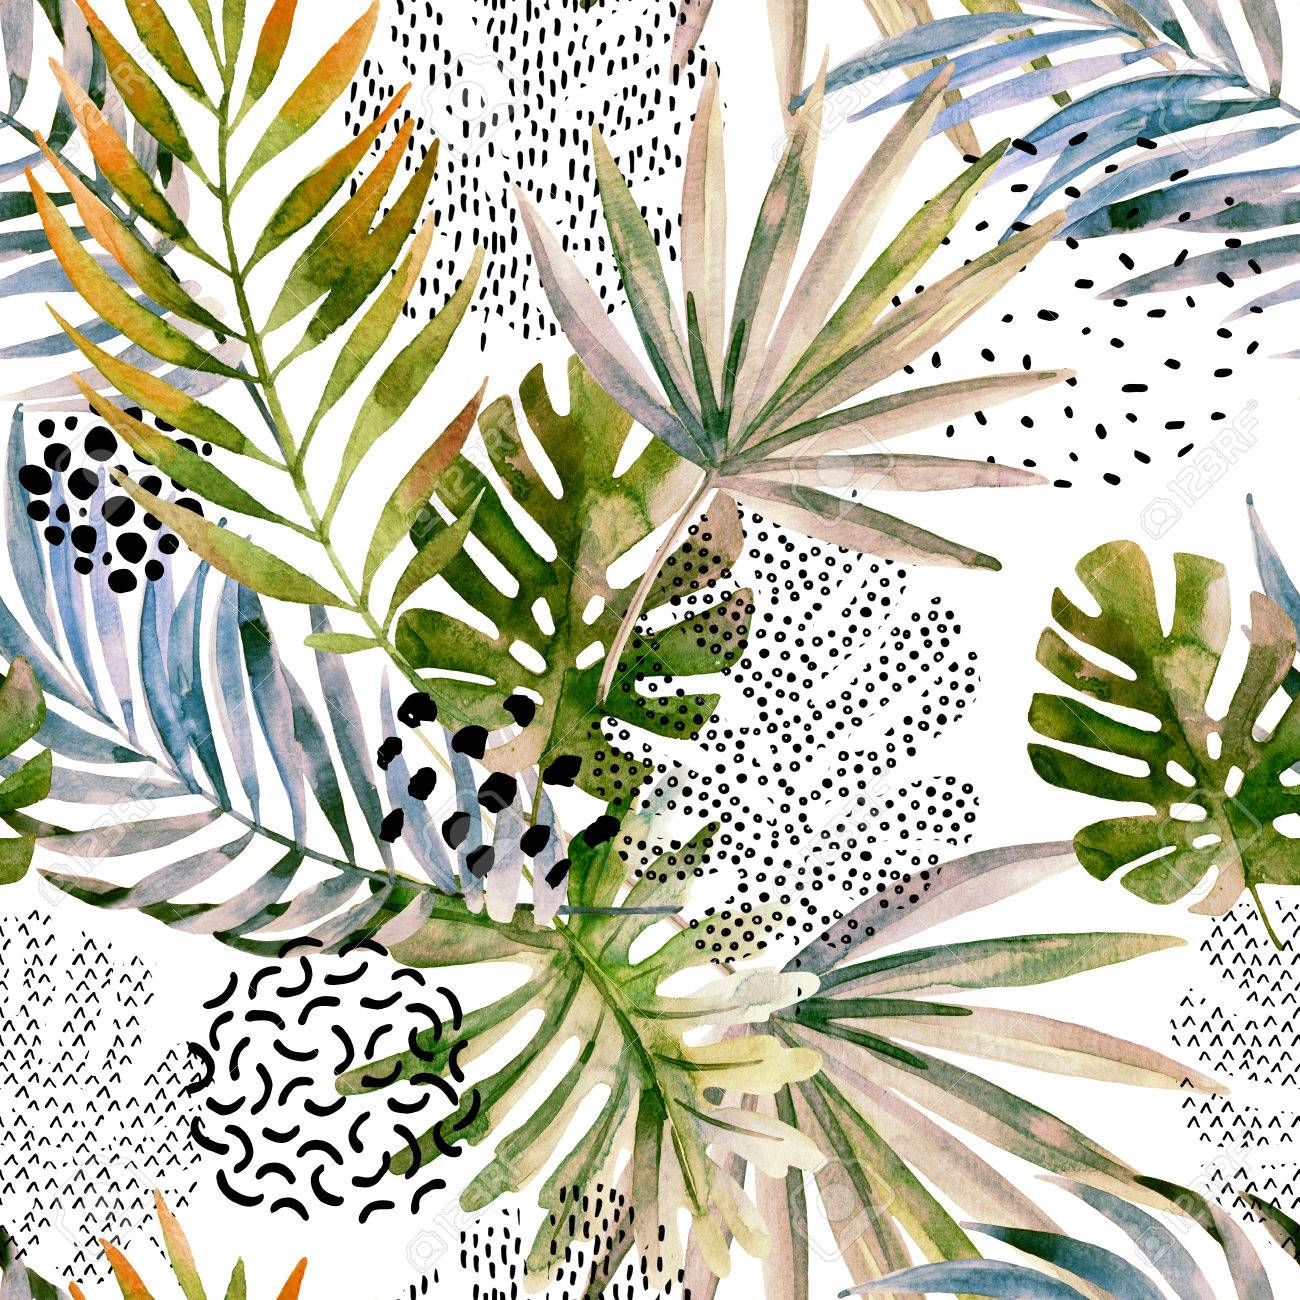 watercolor art illustration tropical leaves filled with marble